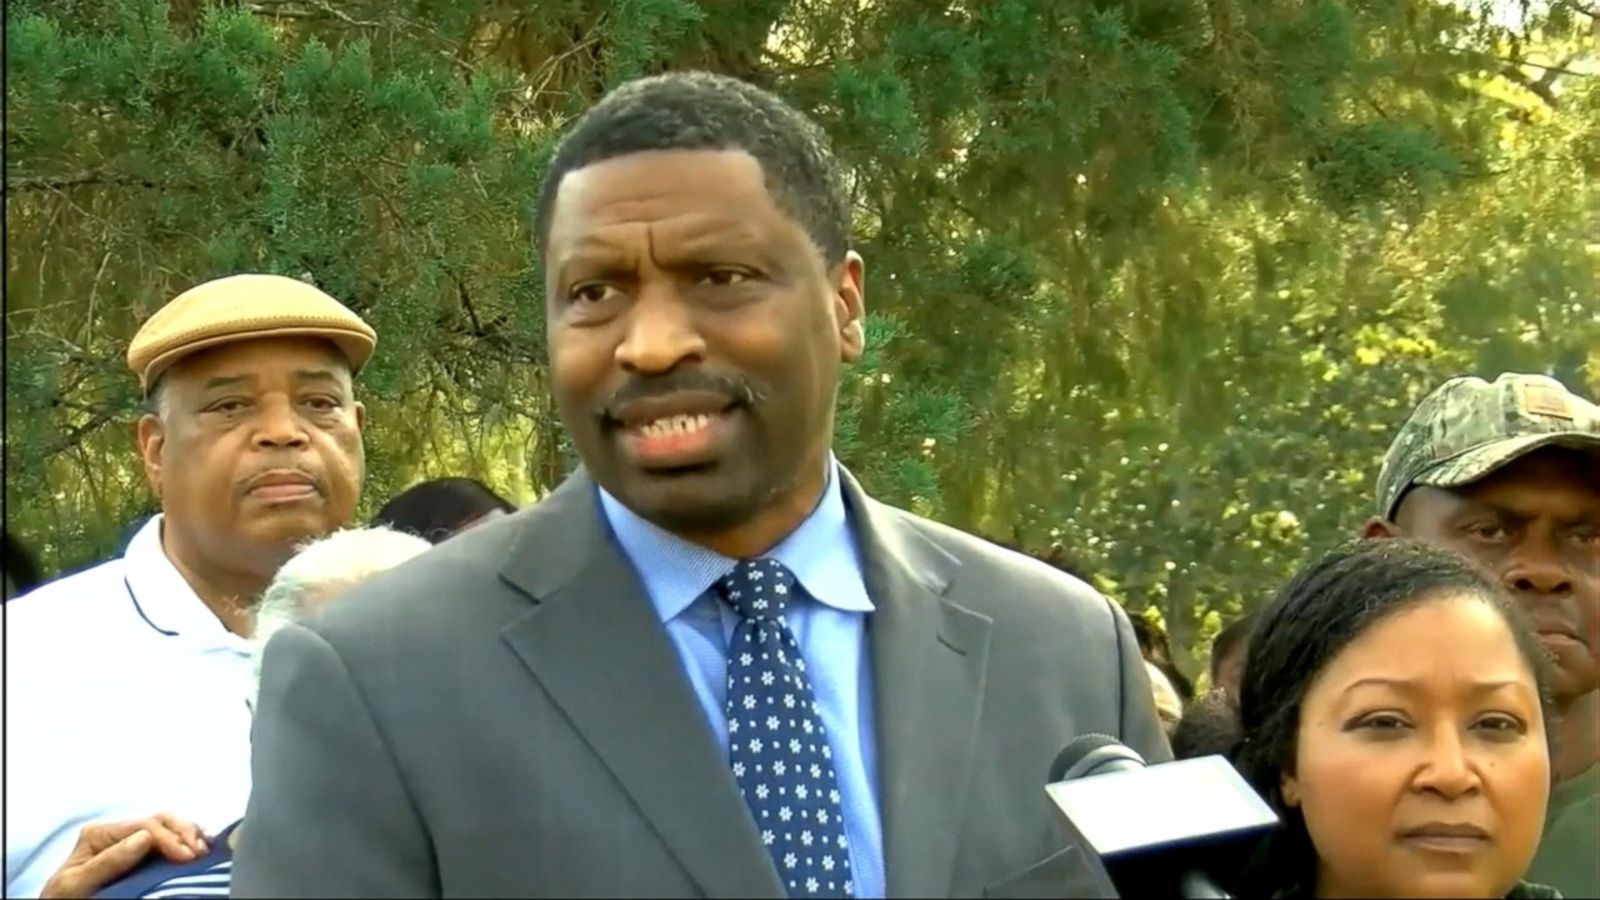 VIDEO: At a Monday news conference, the Mississippi NAACP demanded a federal hate crime investigation.